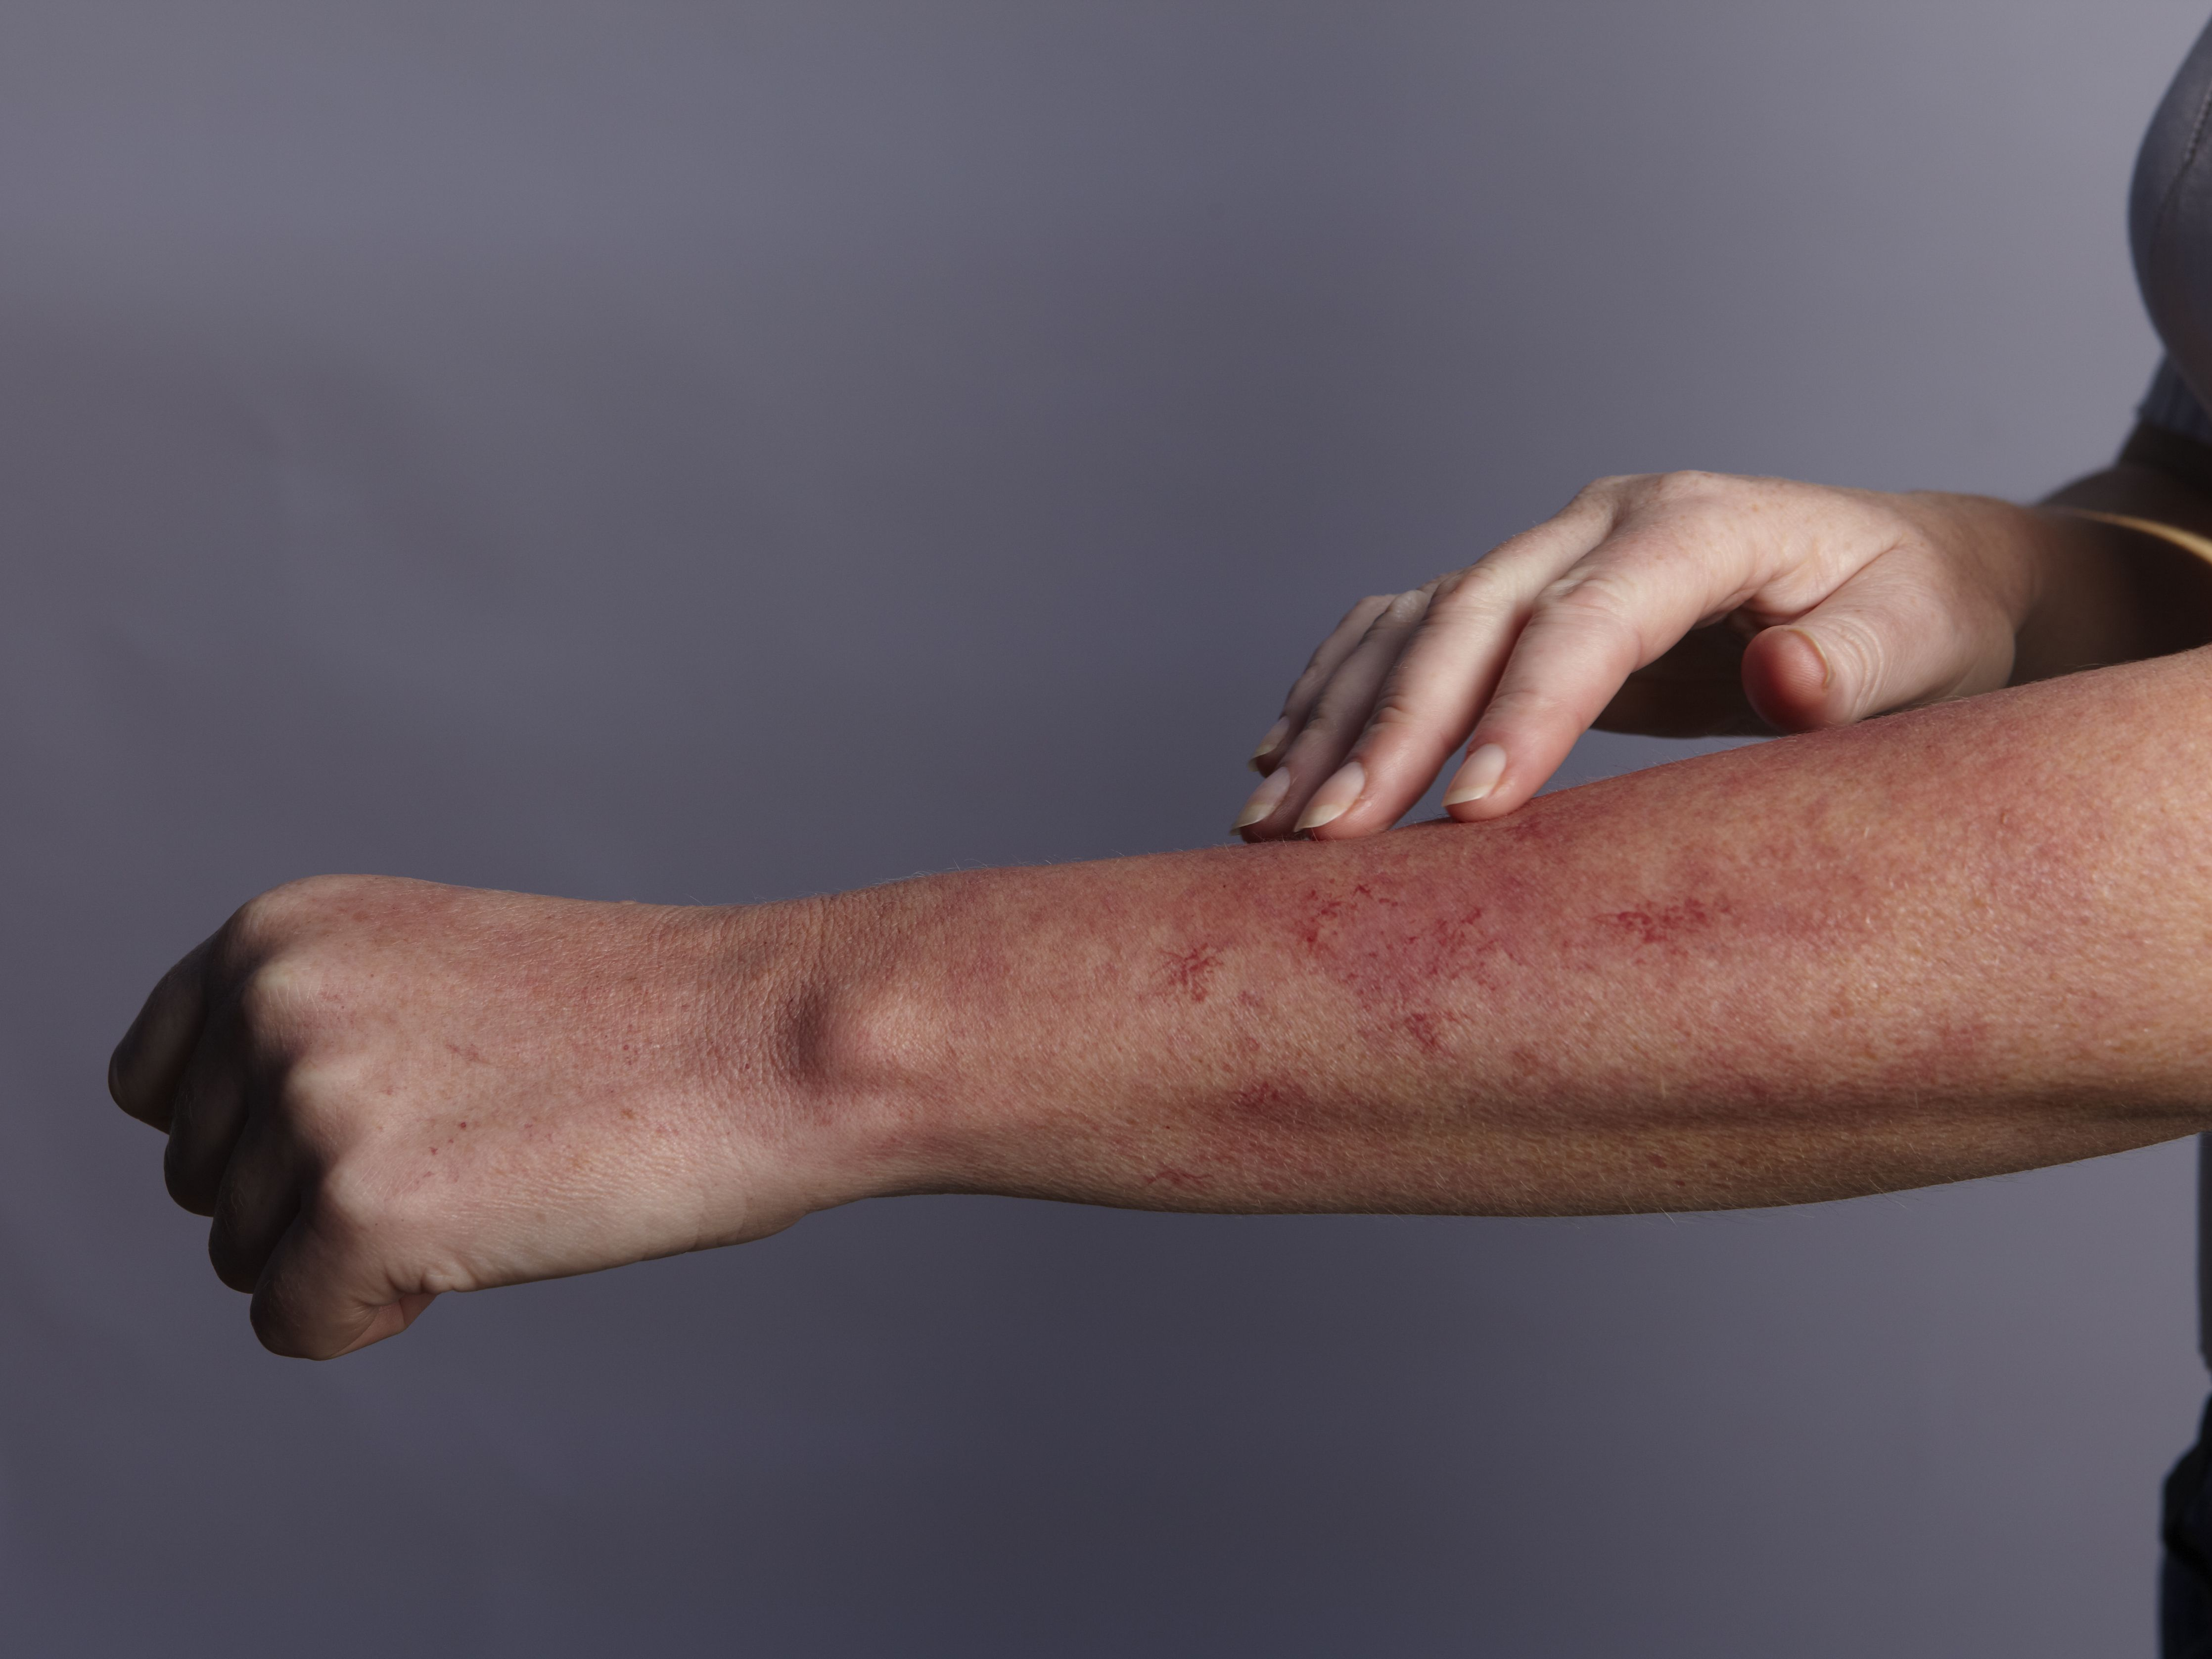 Mosquito Allergy: Symptoms, Diagnosis, and Treatments